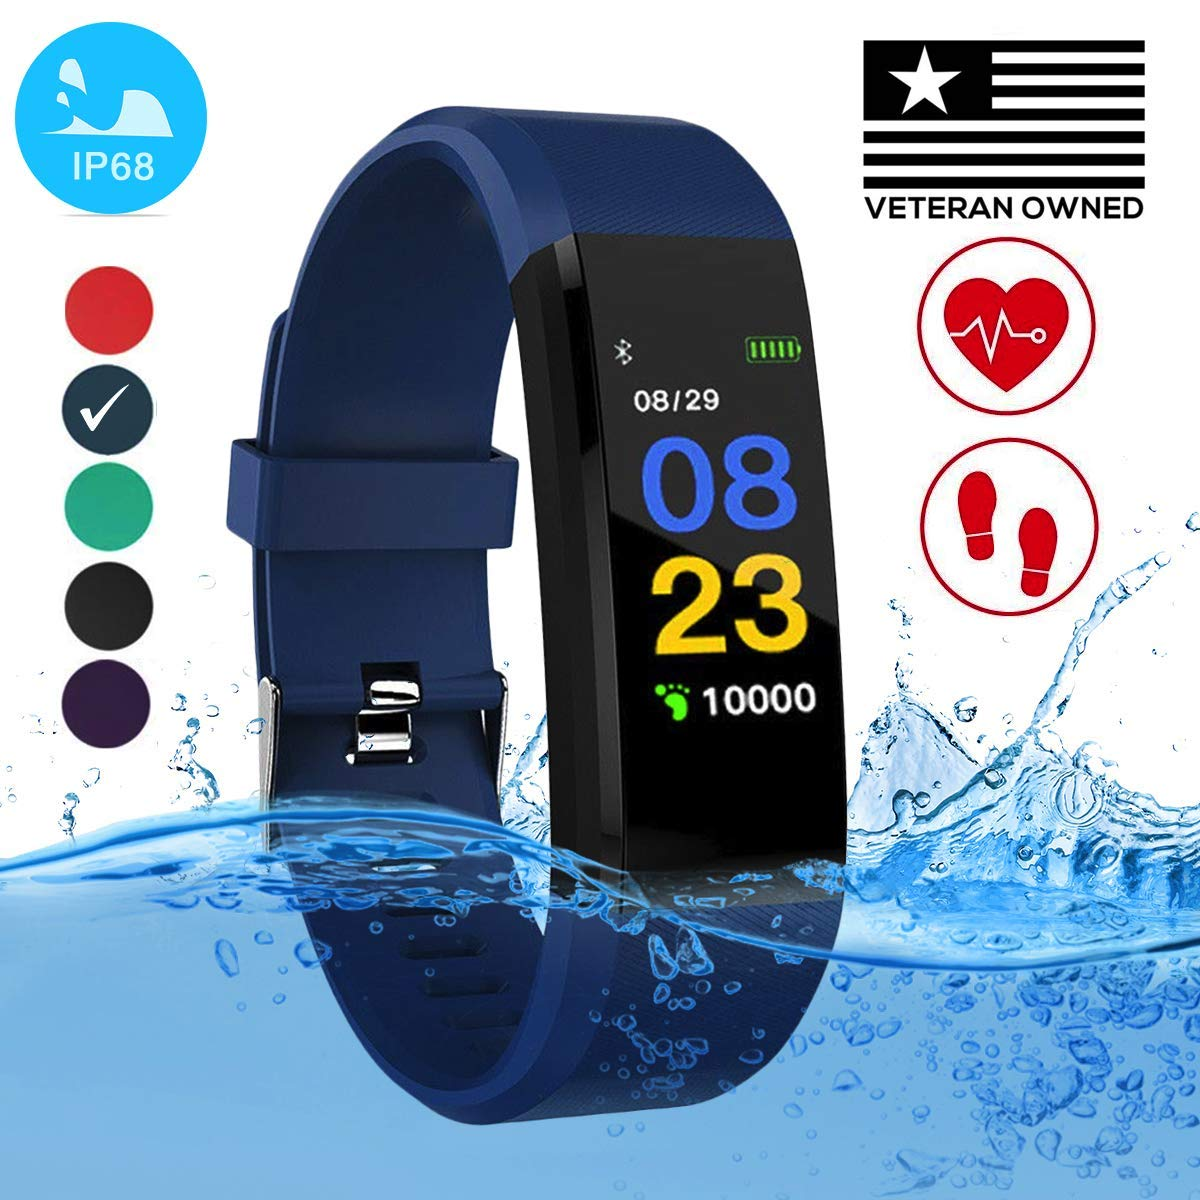 Burn-Rate Fitness Tracker Heart Rate Monitor - Smart Watches for Women & Men, Kids Color Smart Watch Fit Bracelet. Reloj Inteligente band Pedometer, Waterproof, Distance Activity bit for Android & iOS by Burn-Rate Fitness 115plus (Image #1)